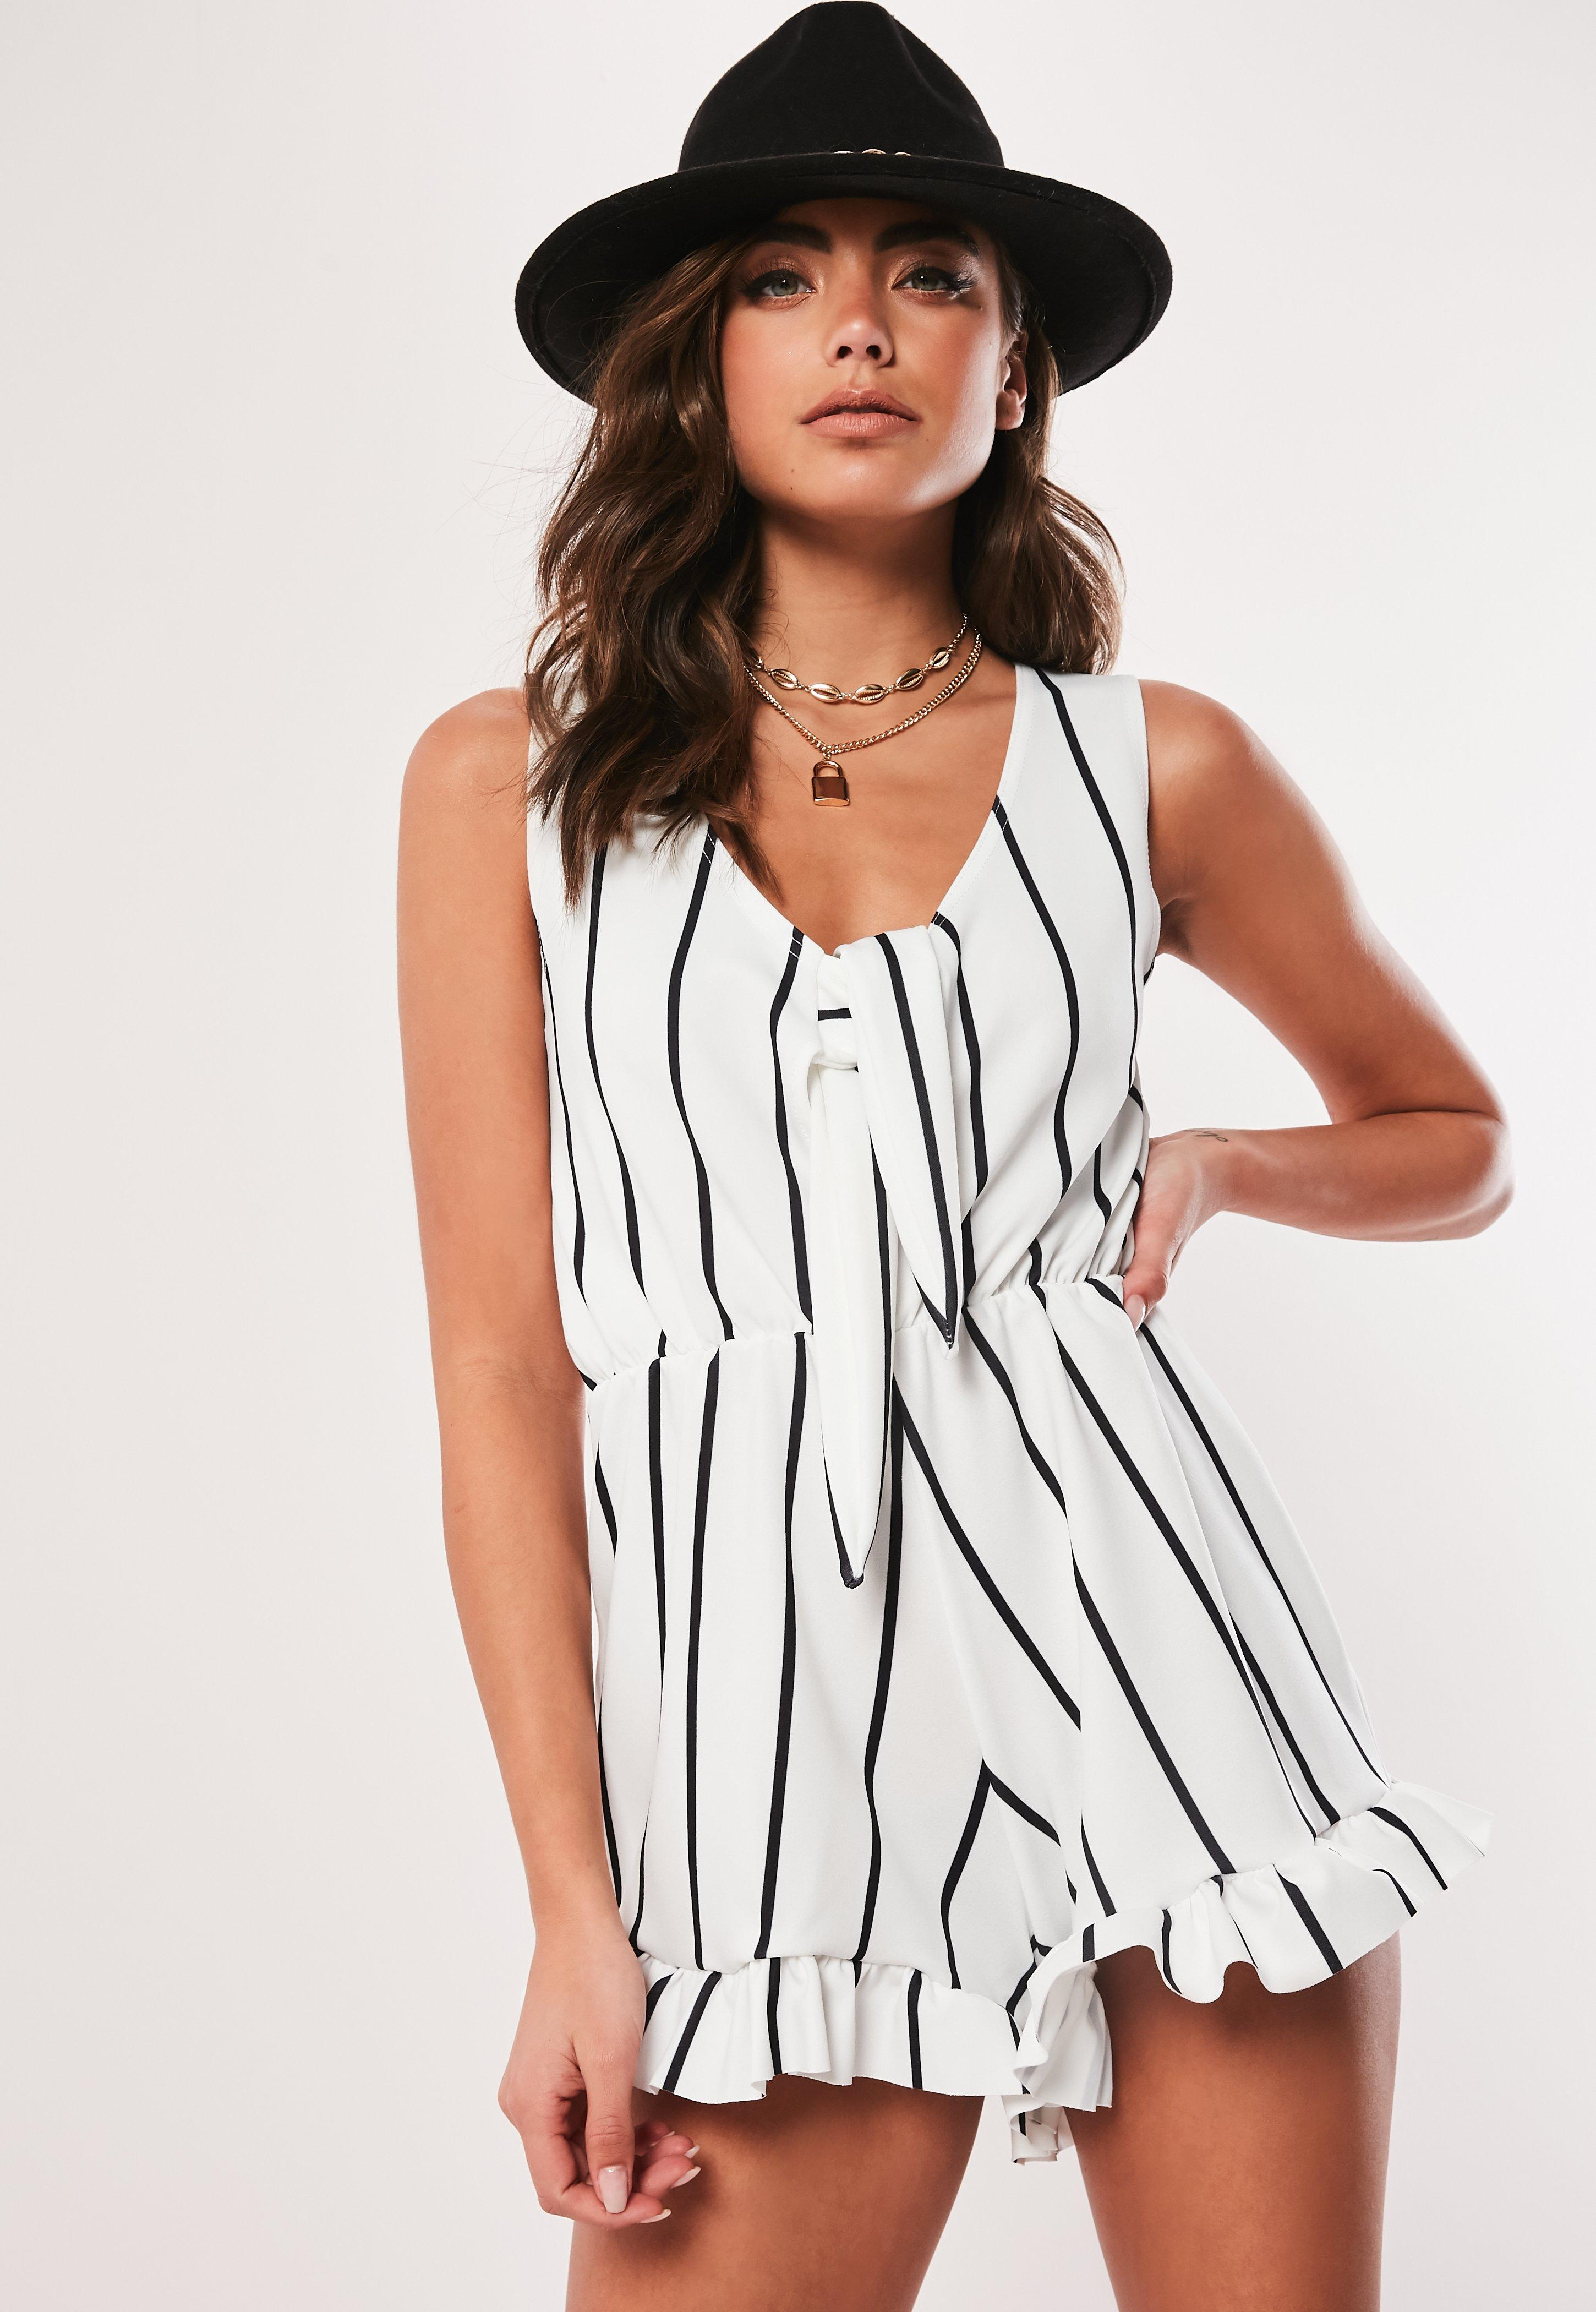 92a5f43aad Rompers for Women - off the Shoulder Rompers 2019